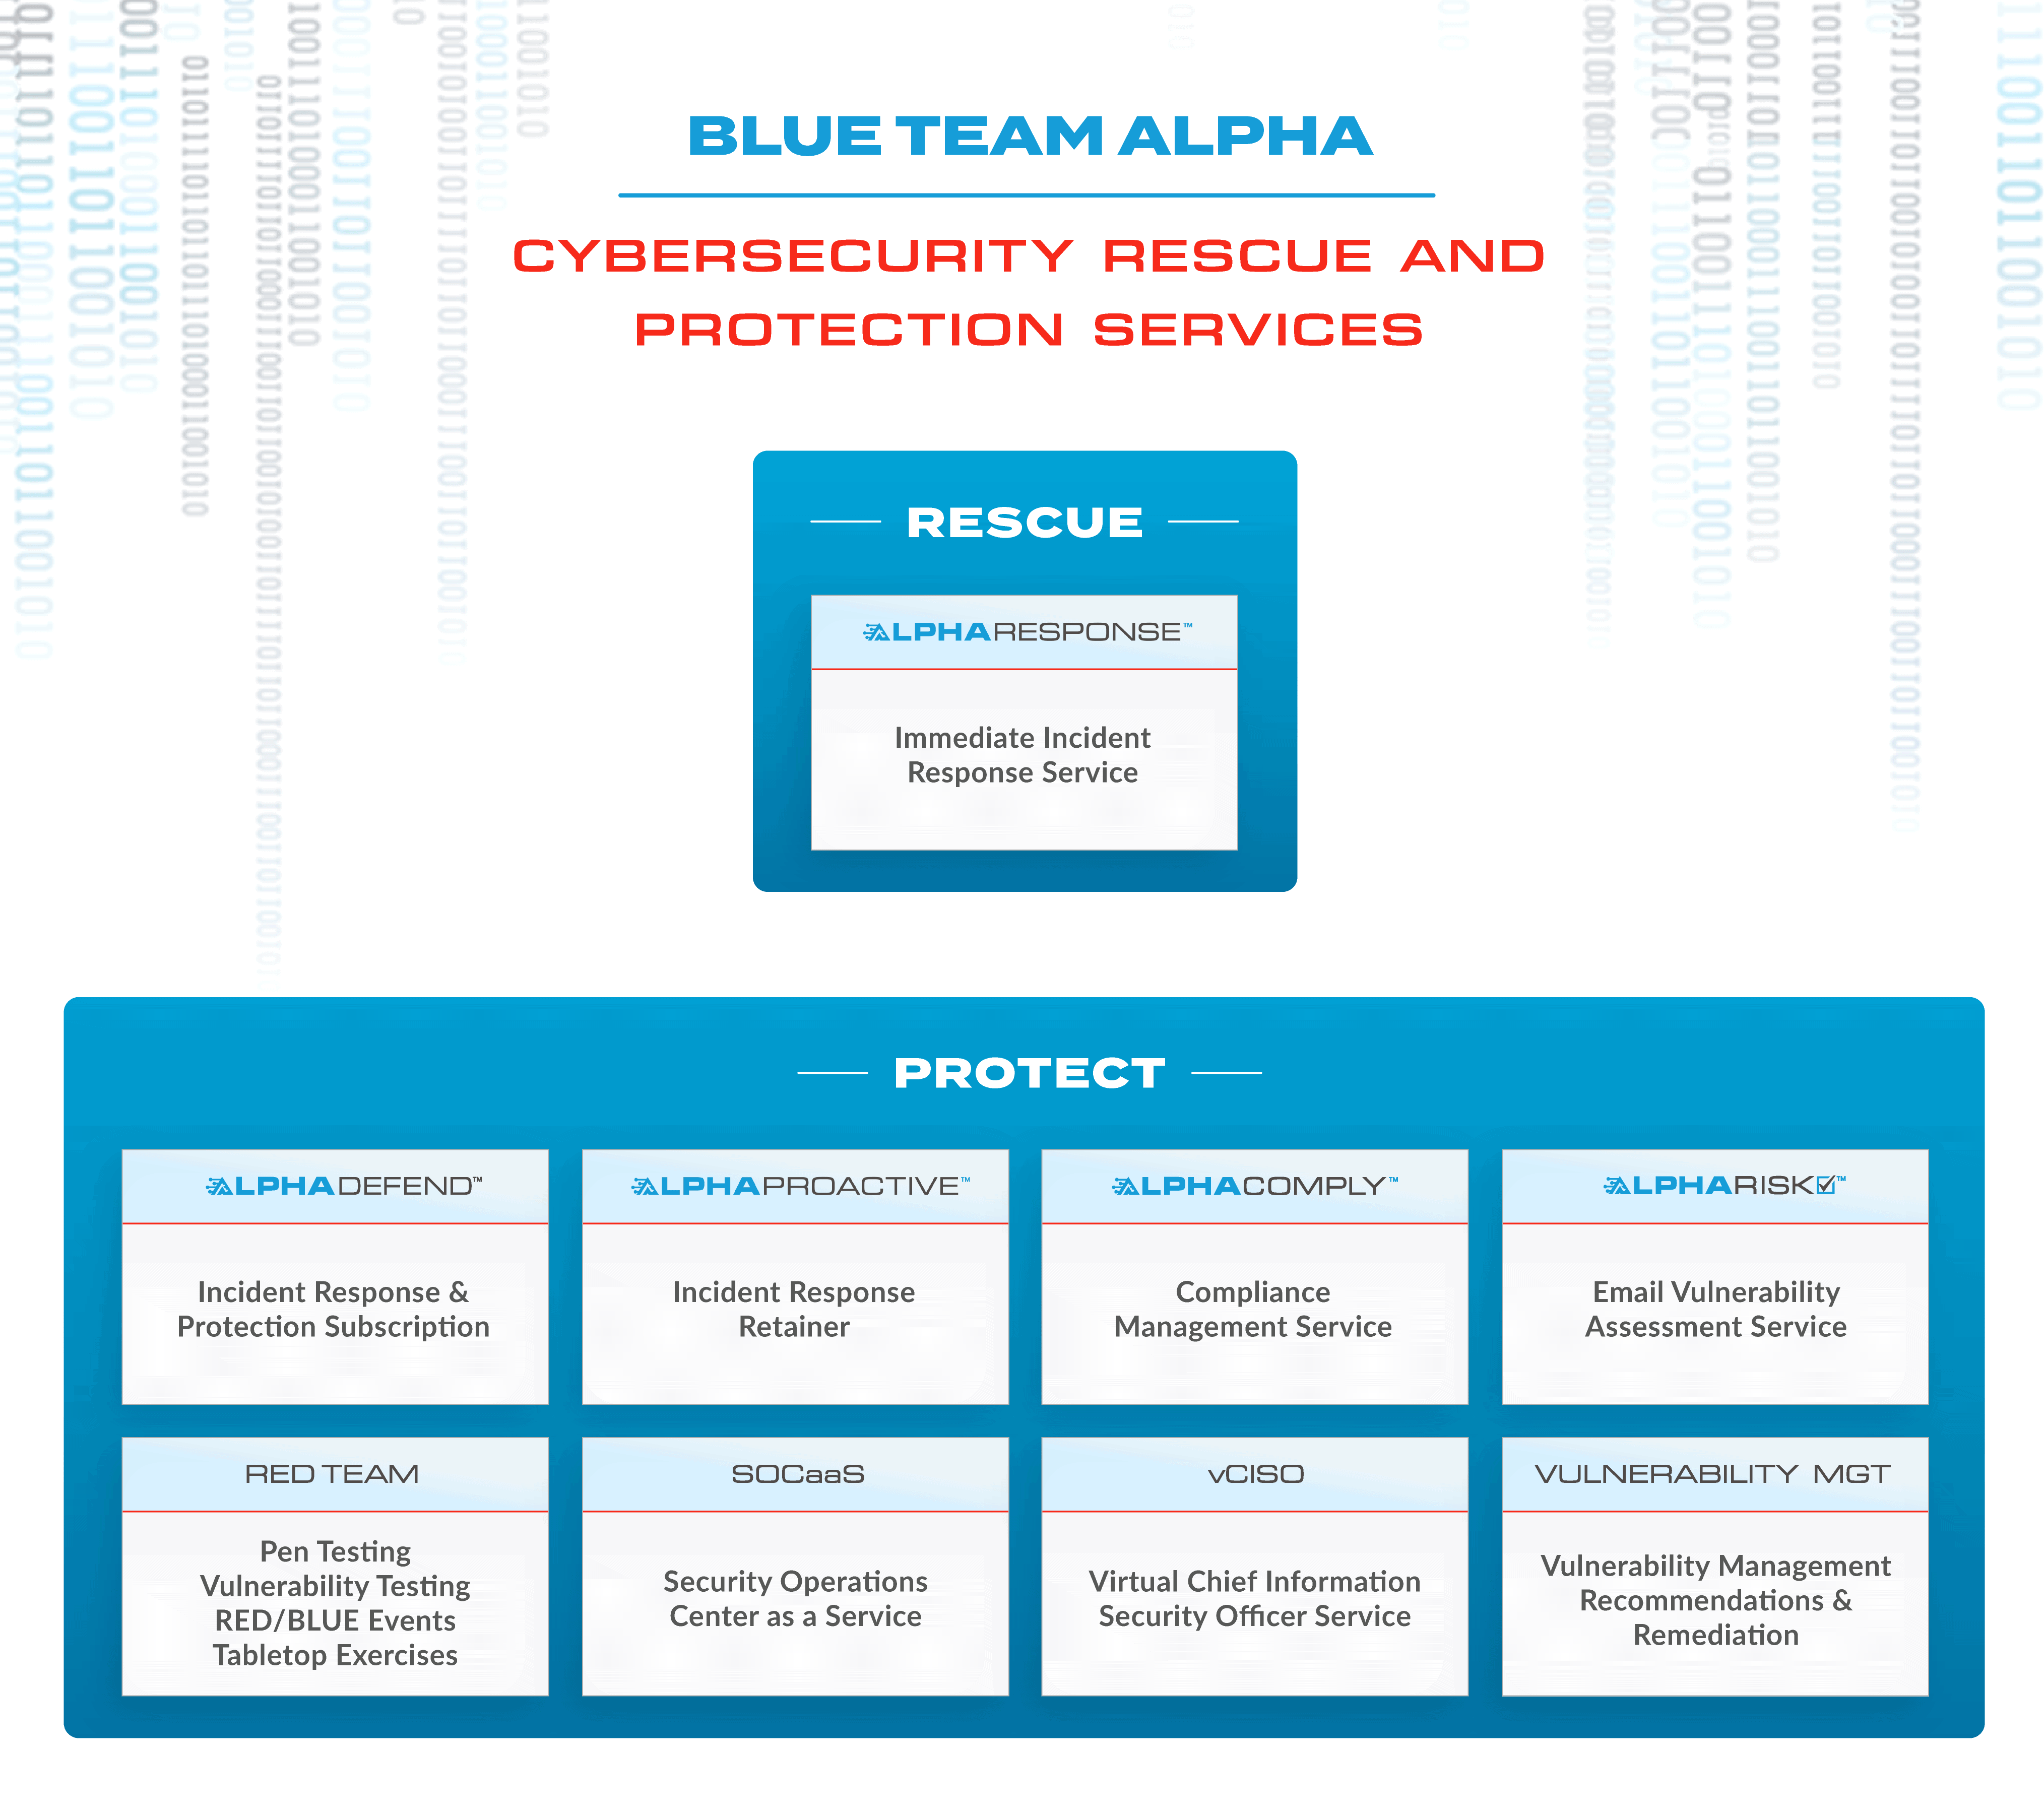 Blue Team Alpha Cybersecurity Rescue and Protective Services